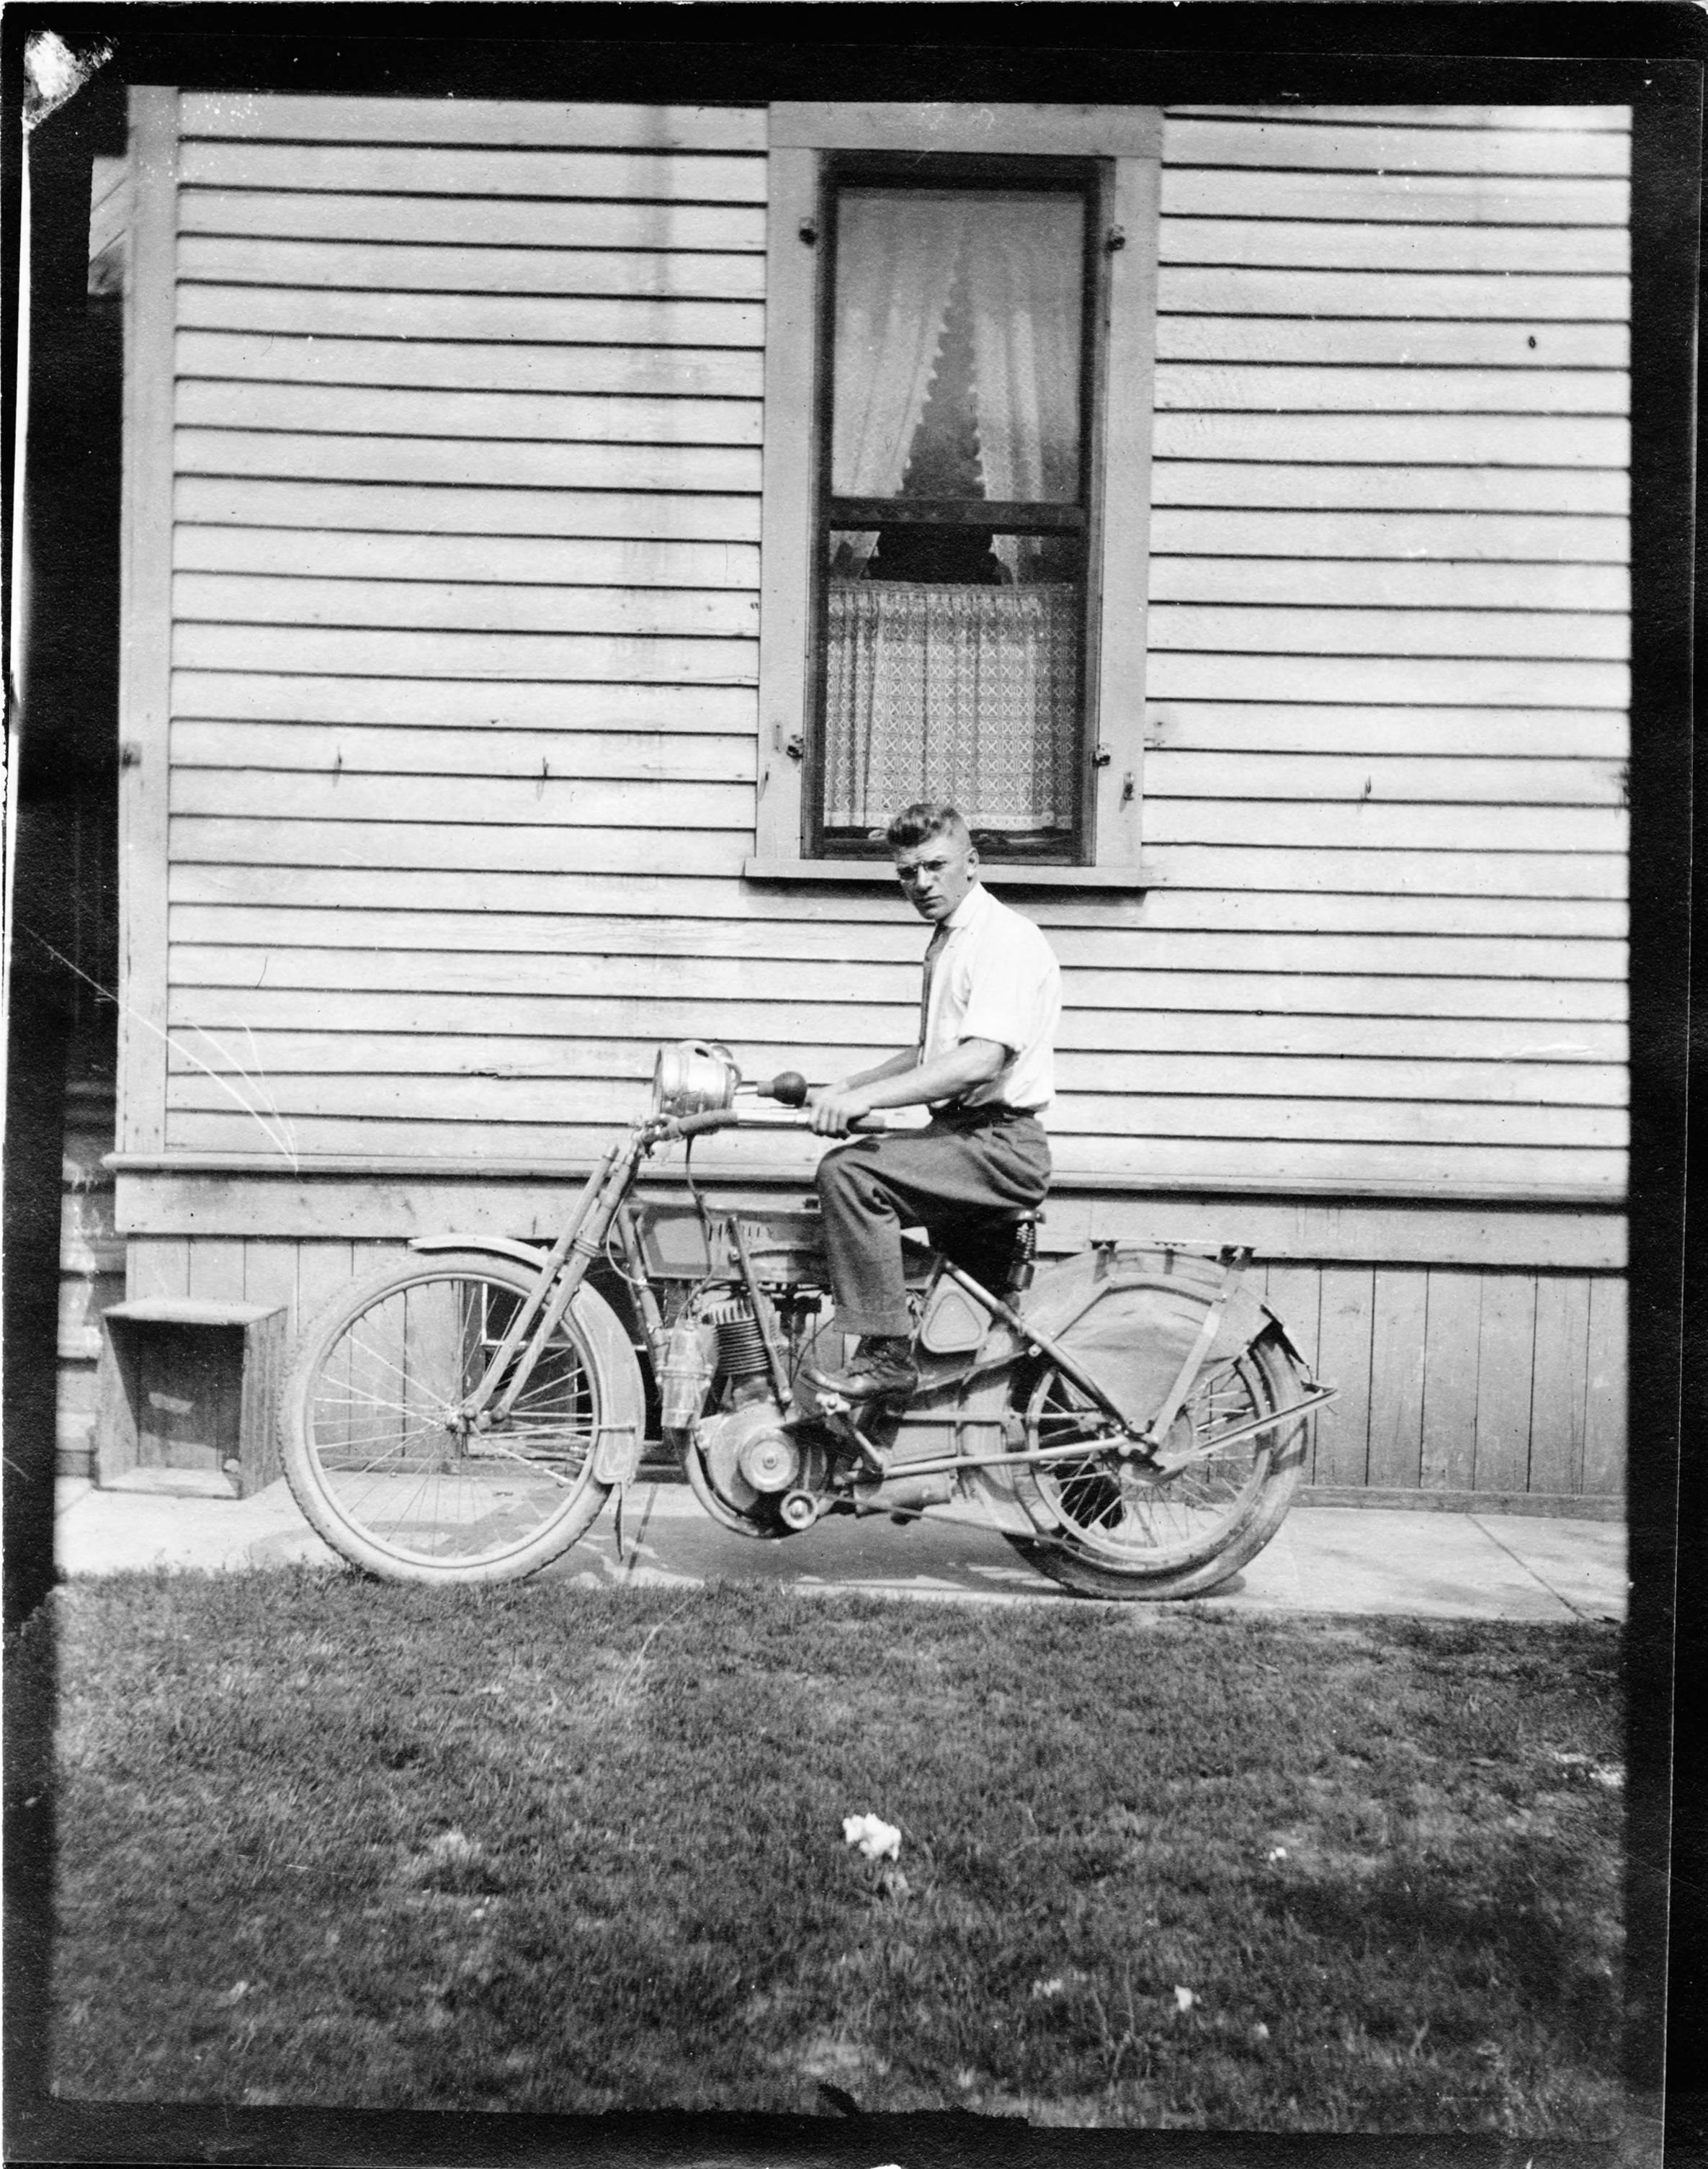 A man poses with an early 20th-century motorcycle in Milwaukee.